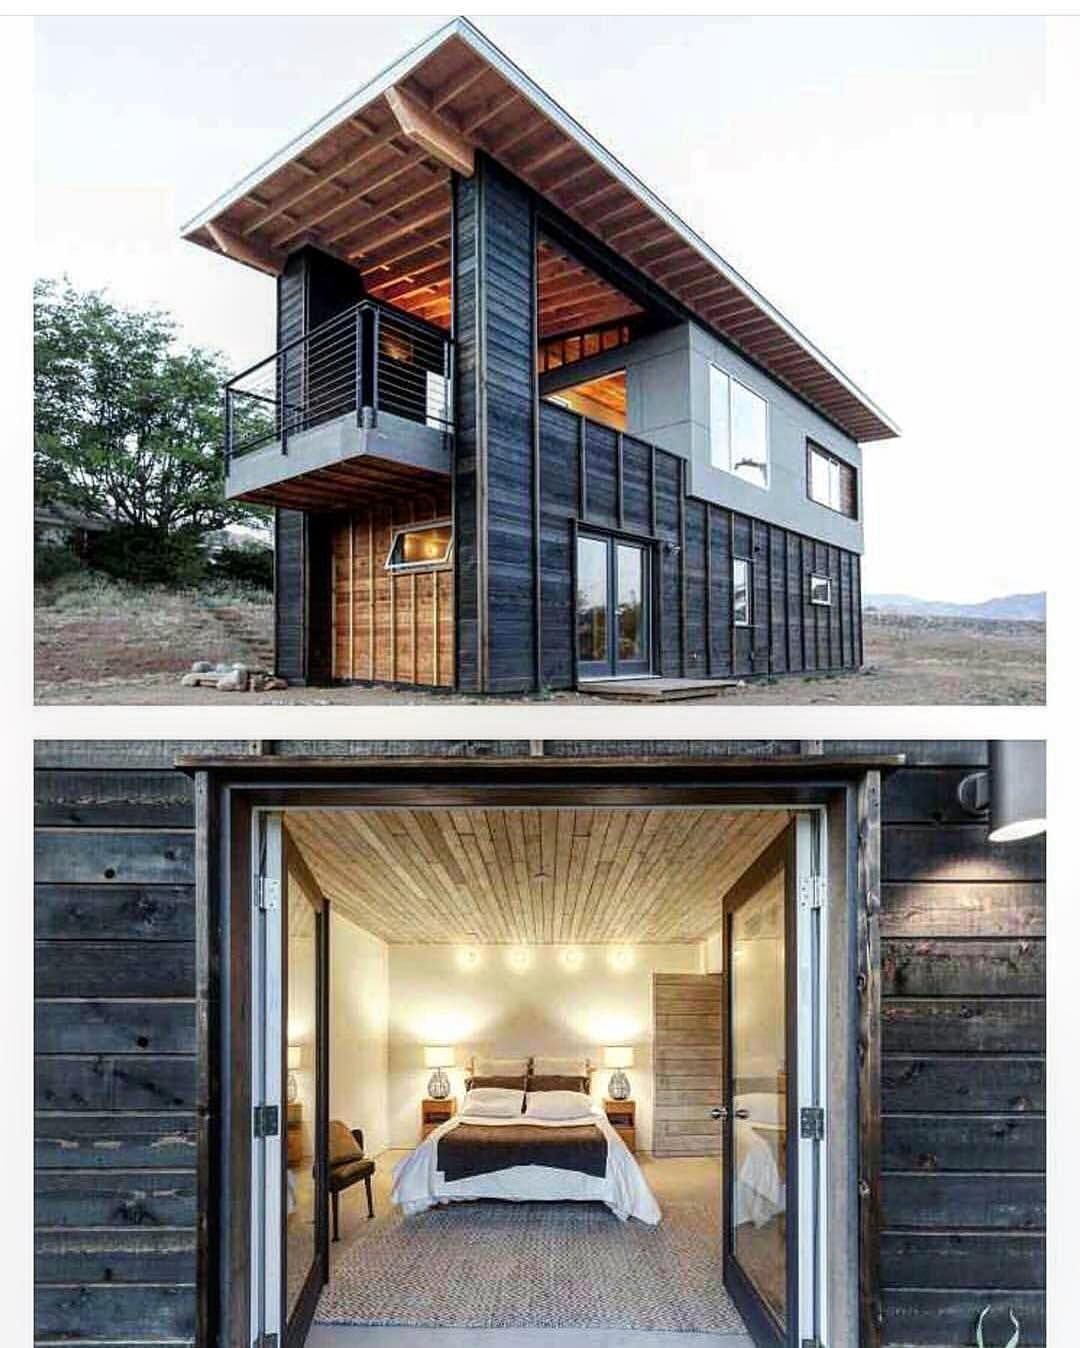 Shipping Container Homes 6 Shipping Container Home Designs Container House Plans Building A Container Home